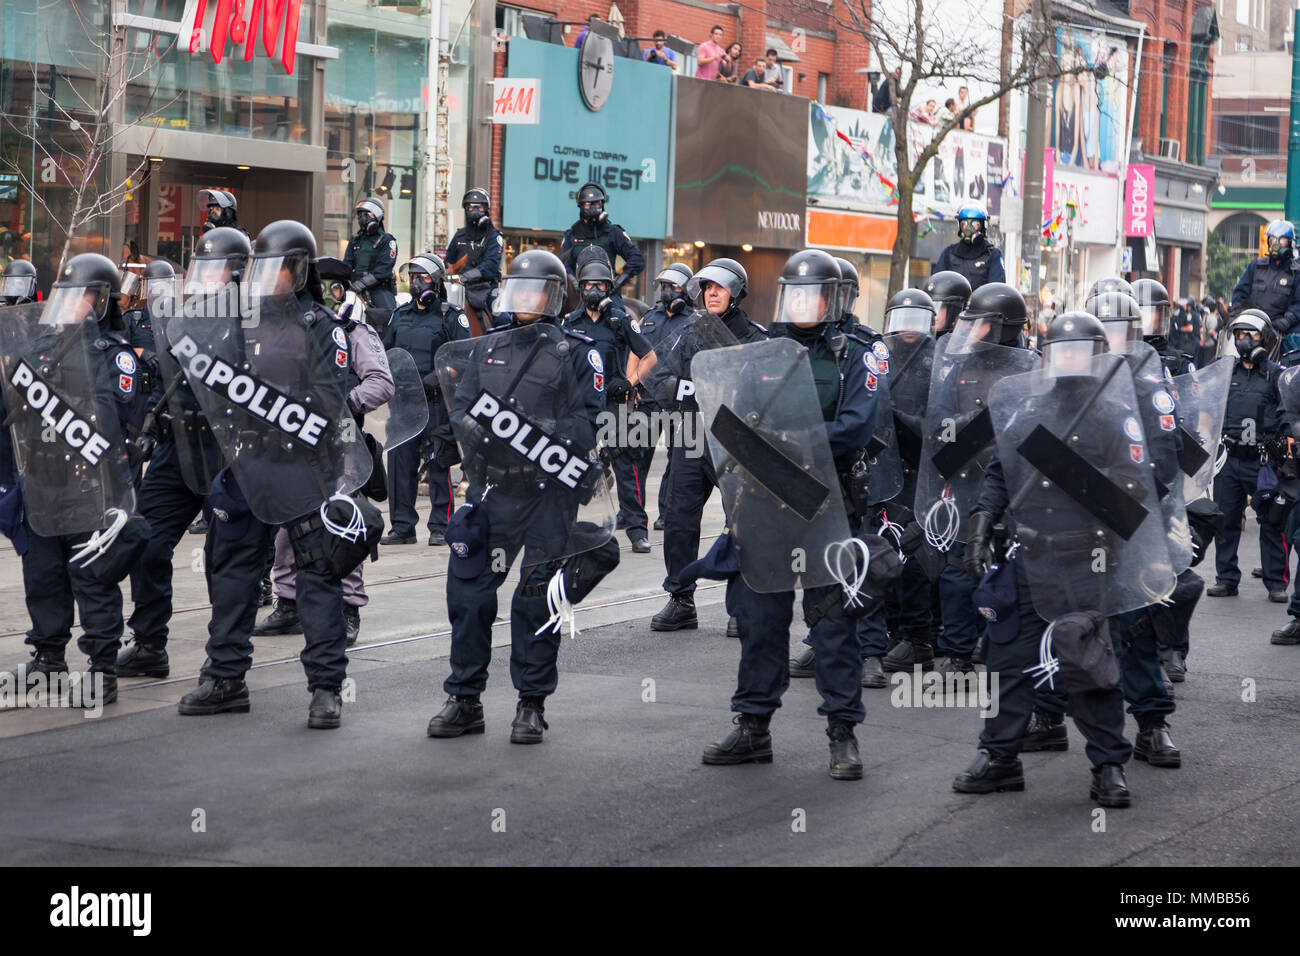 Riot police create a barricade along Queen Street West during the G20 summit in Downtown Toronto, Ontario, Canada. - Stock Image